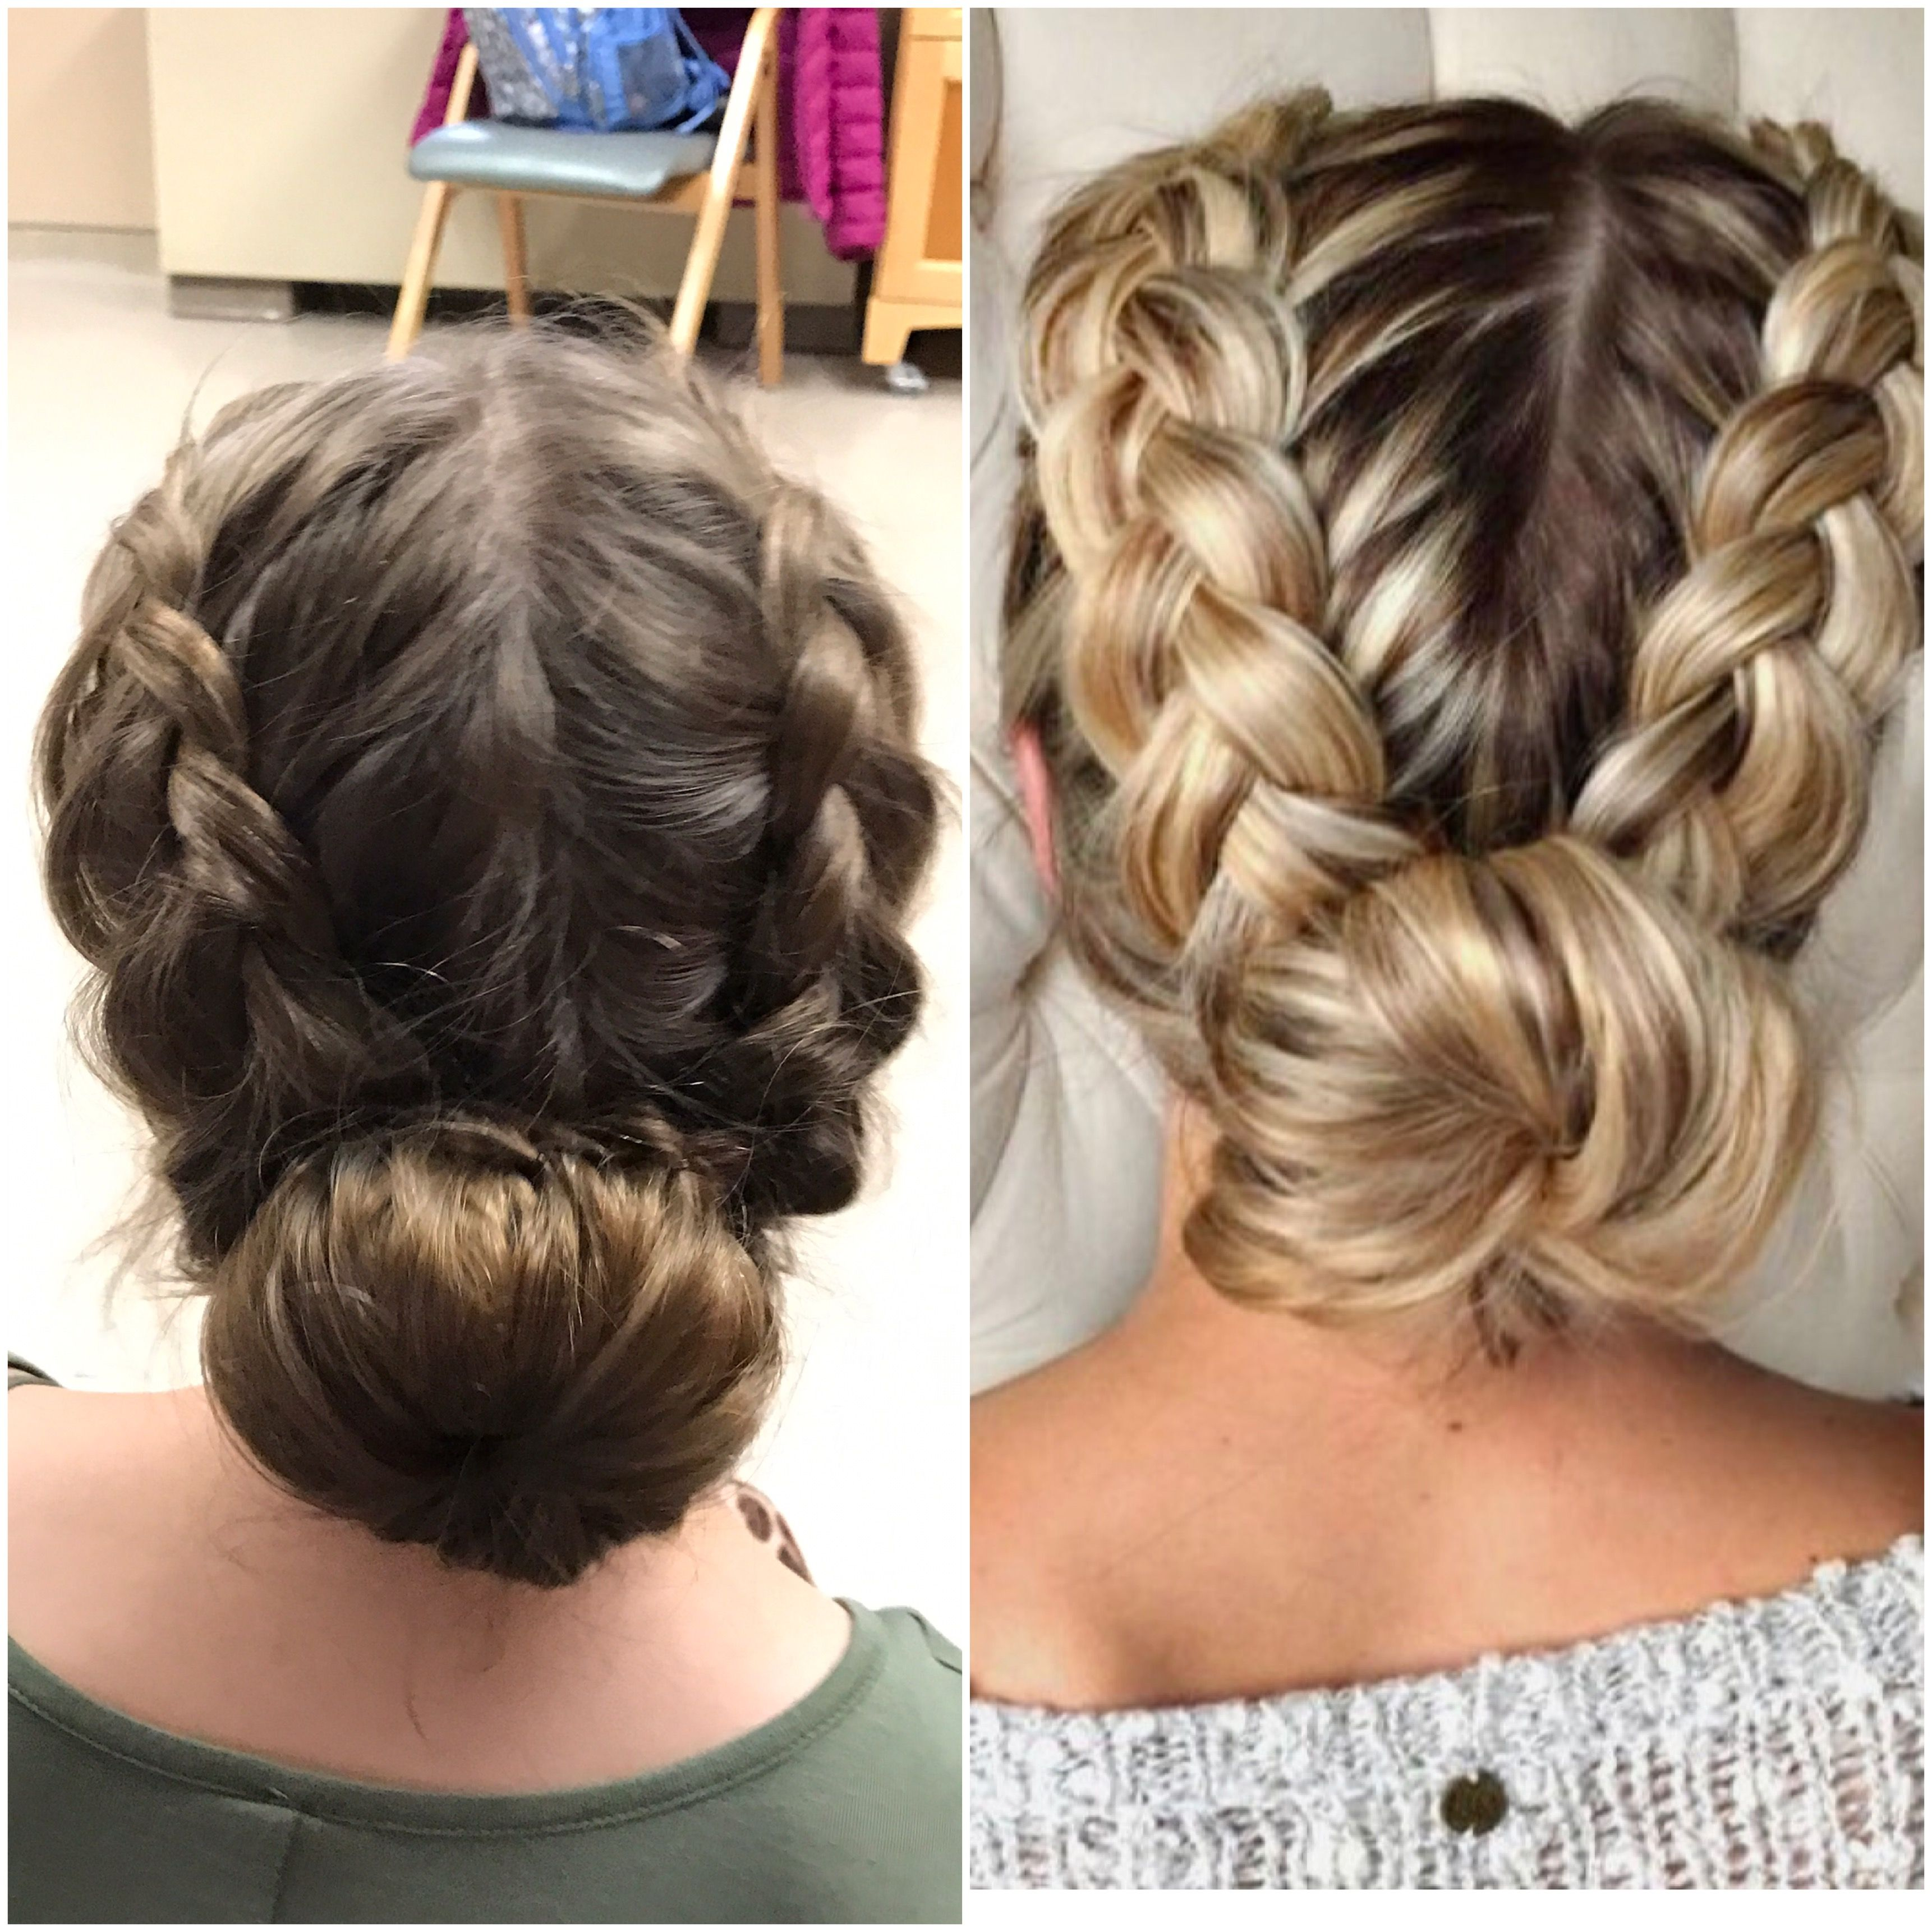 This Is A Super Easy Hairstyle Took Me 3 Mins To Do Me On Left Model On Right First Do 2 Dutc Easy Hairstyles Easy Work Hairstyles Braided Bun Hairstyles